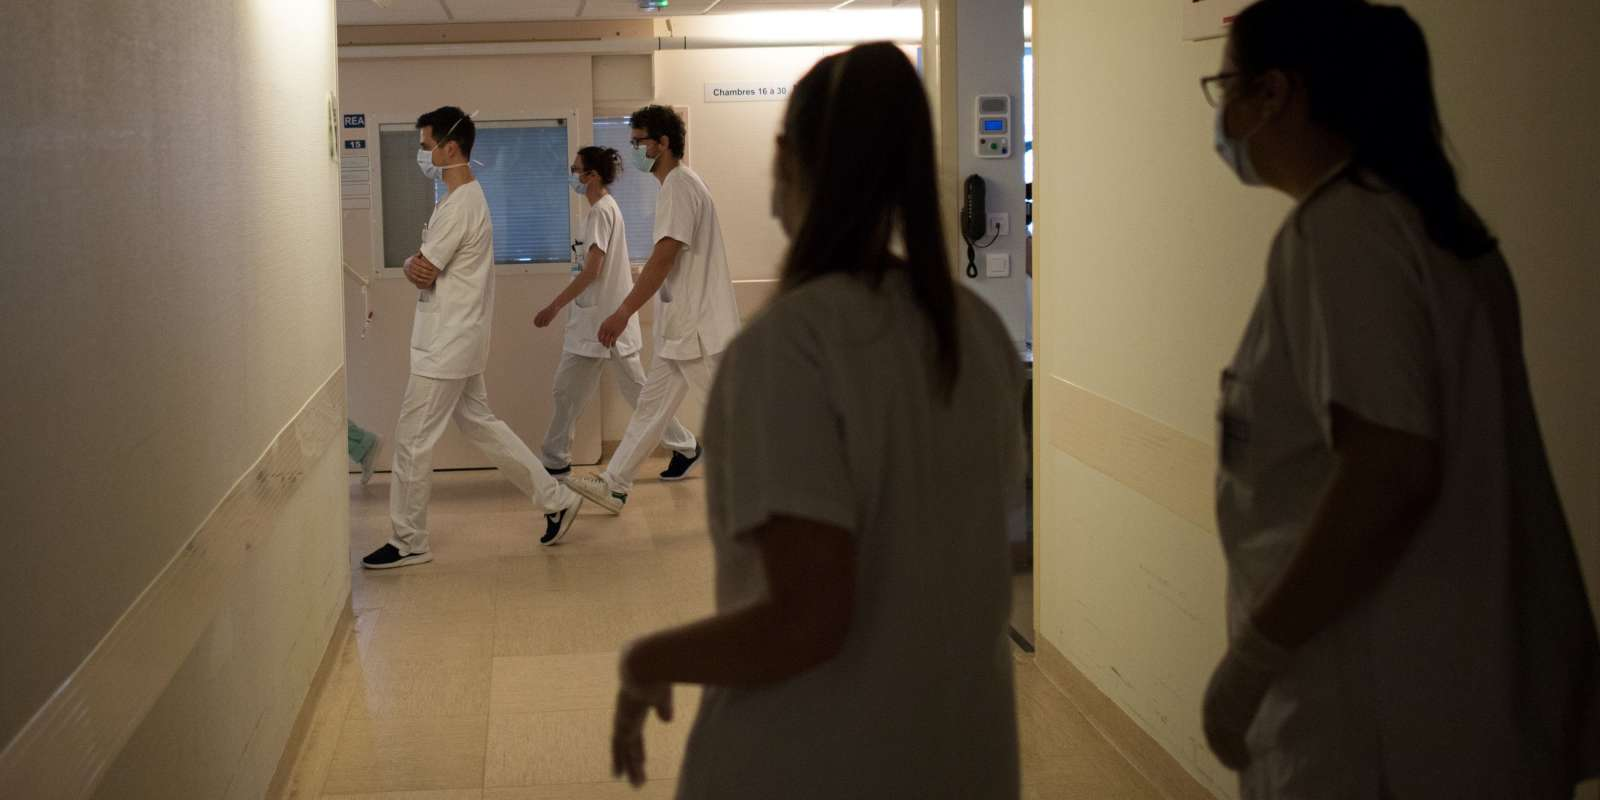 Caregivers walk down a corridor in the intensive care service of the Nantes university hospital, on May 19, 2020 in Nantes, western France, as France eased lockdown measures to curb the spread of the COVID-19 pandemic, caused by the novel coronavirus. / AFP / Loic VENANCE